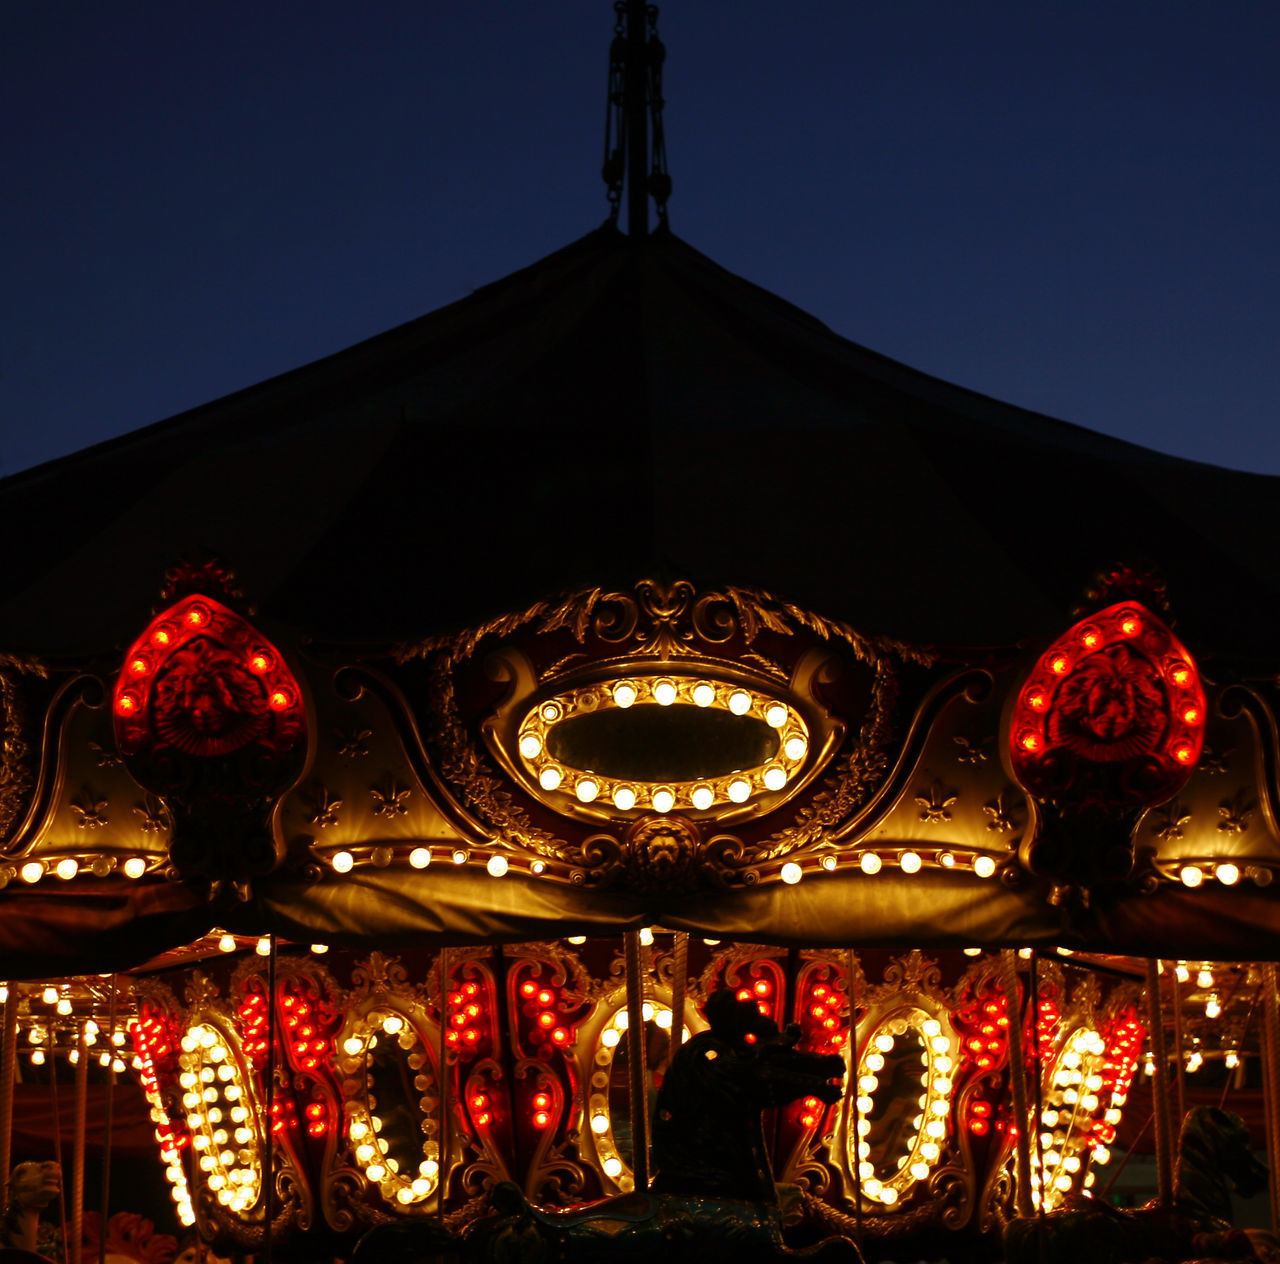 illuminated, sky, lighting equipment, night, amusement park, low angle view, arts culture and entertainment, amusement park ride, carousel, built structure, architecture, no people, building exterior, clear sky, representation, glowing, nature, decoration, red, outdoors, festival, ornate